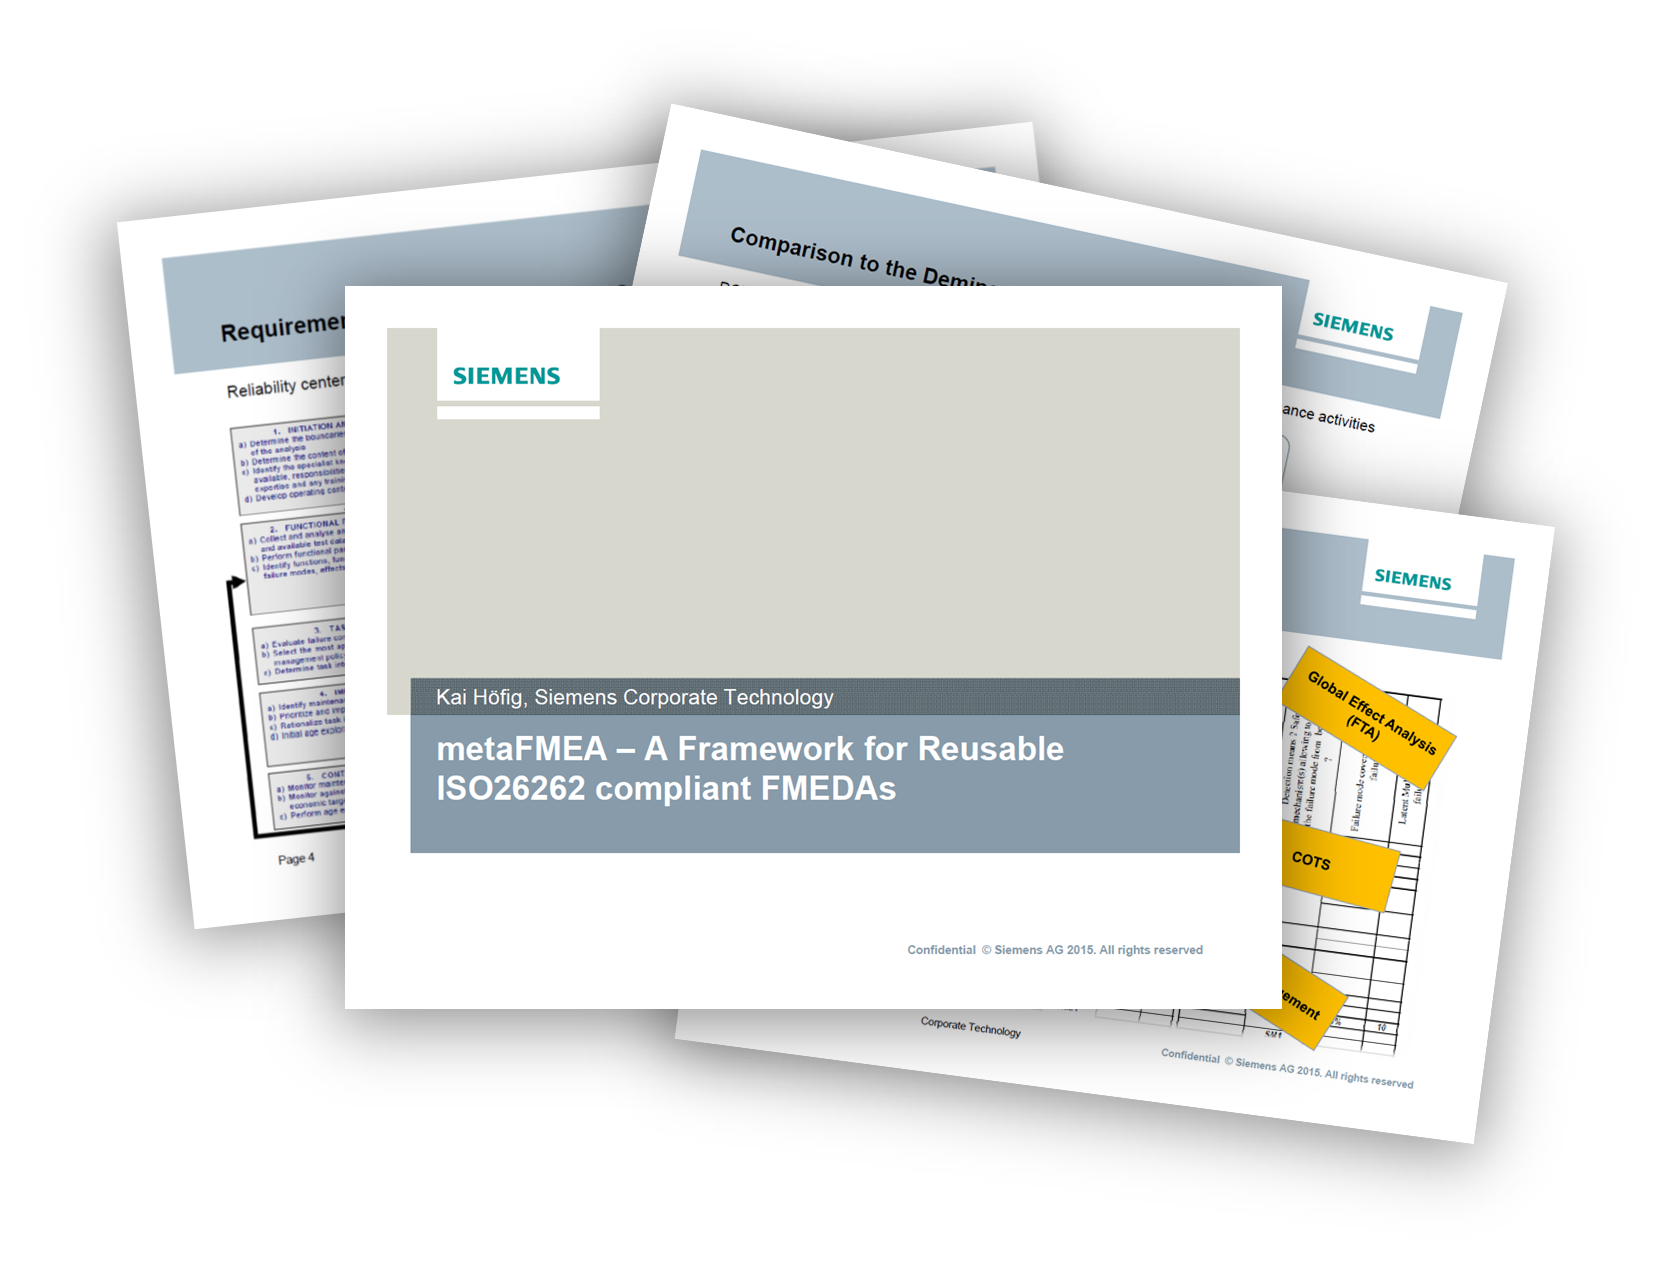 Siemens presents Framework for Reusable ISO 26262 compliant FMEDAs